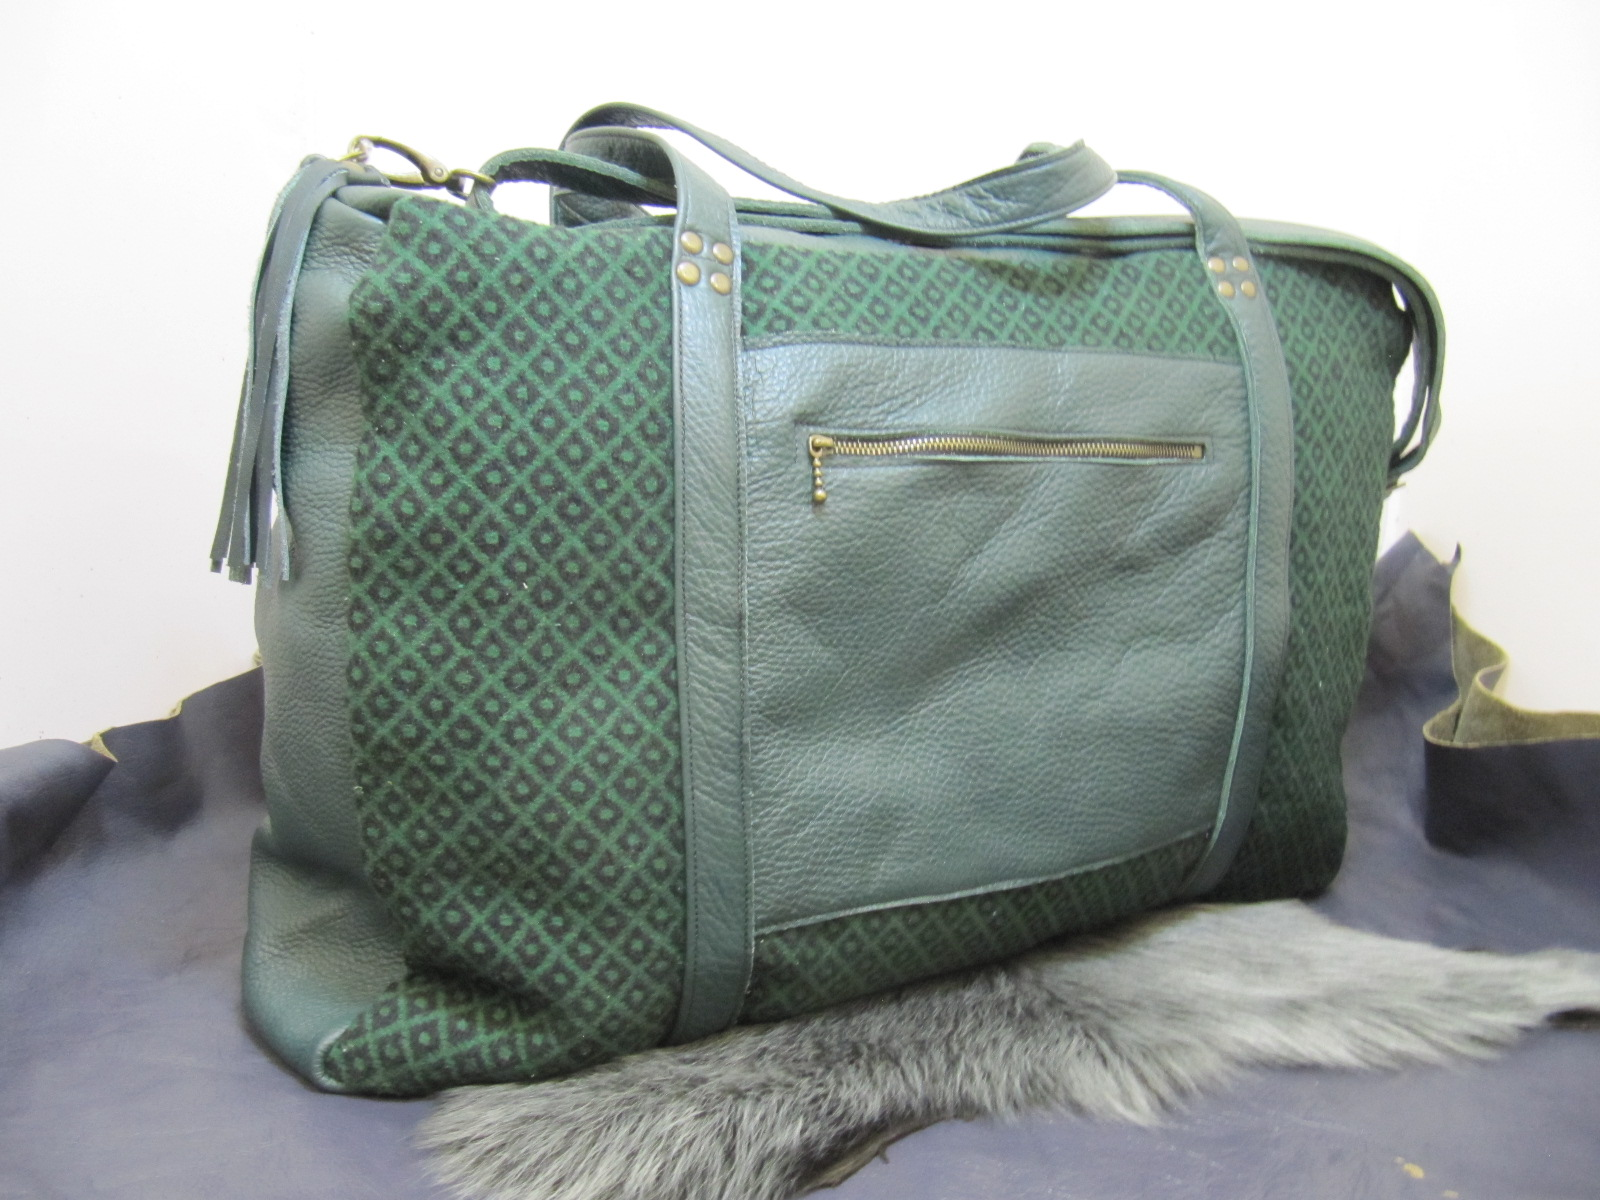 Travel flight bag in Welsh tweed and green leather